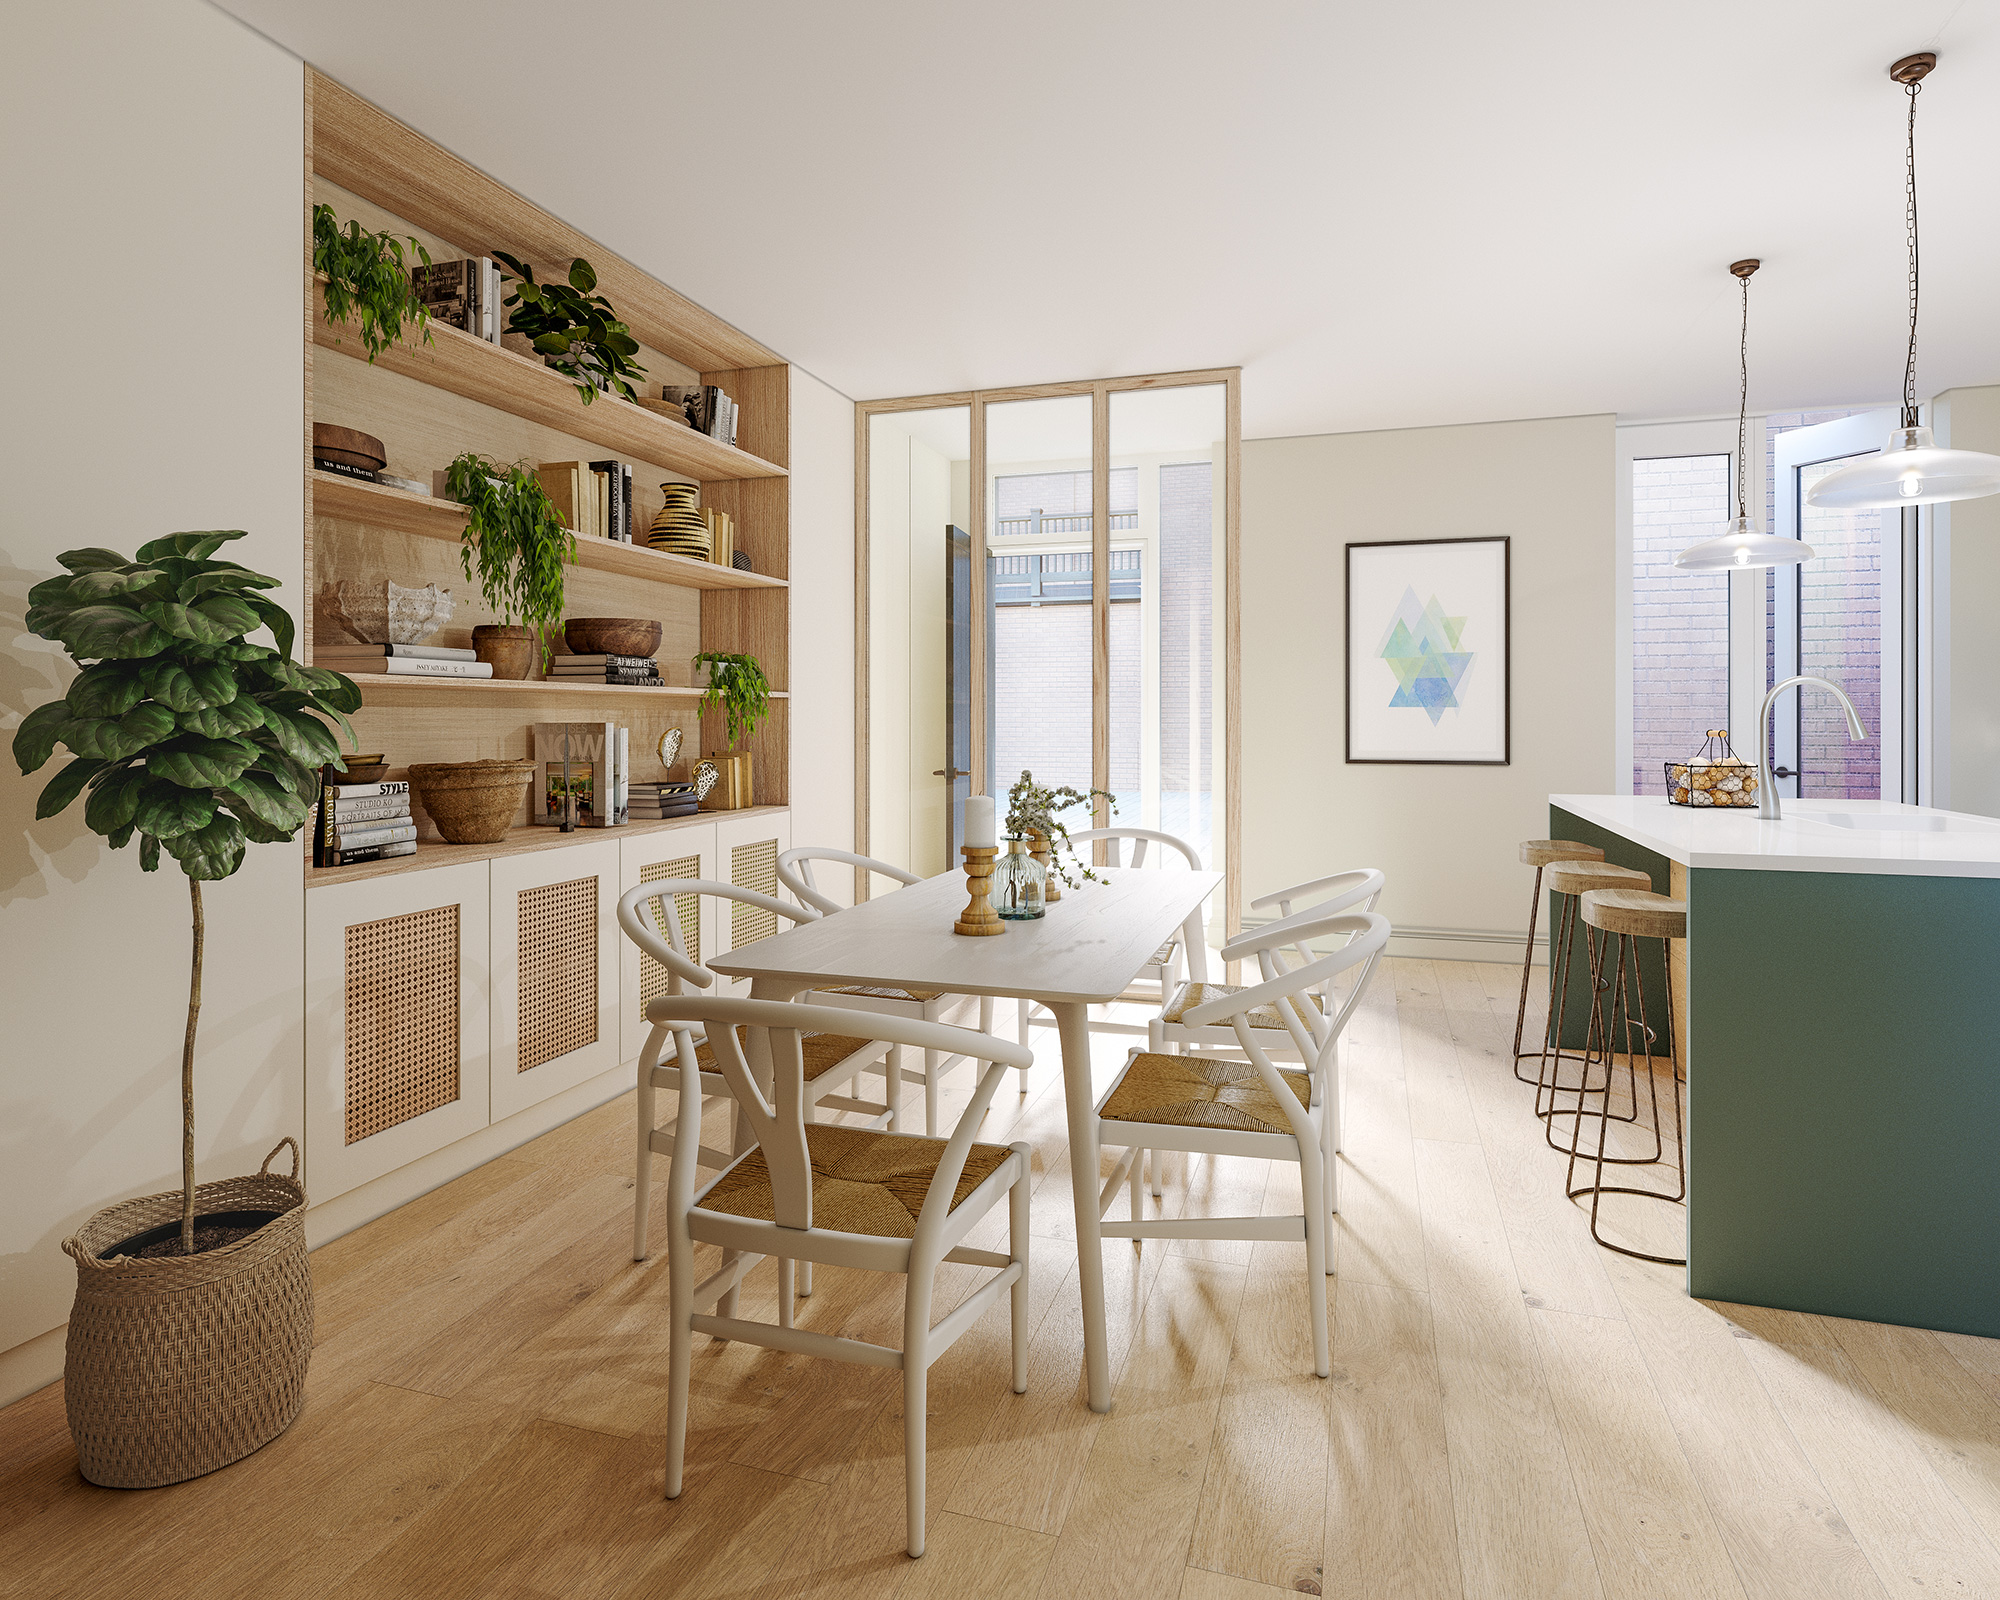 - Throughout the Mews Houses an uncompromising approach to quality is immediately apparent. The bright and airy dining areas feature architecturally designed glazed partitions, recessed shelving units with solid oak lipping and handcrafted joinery finished in white with natural cane panelling.